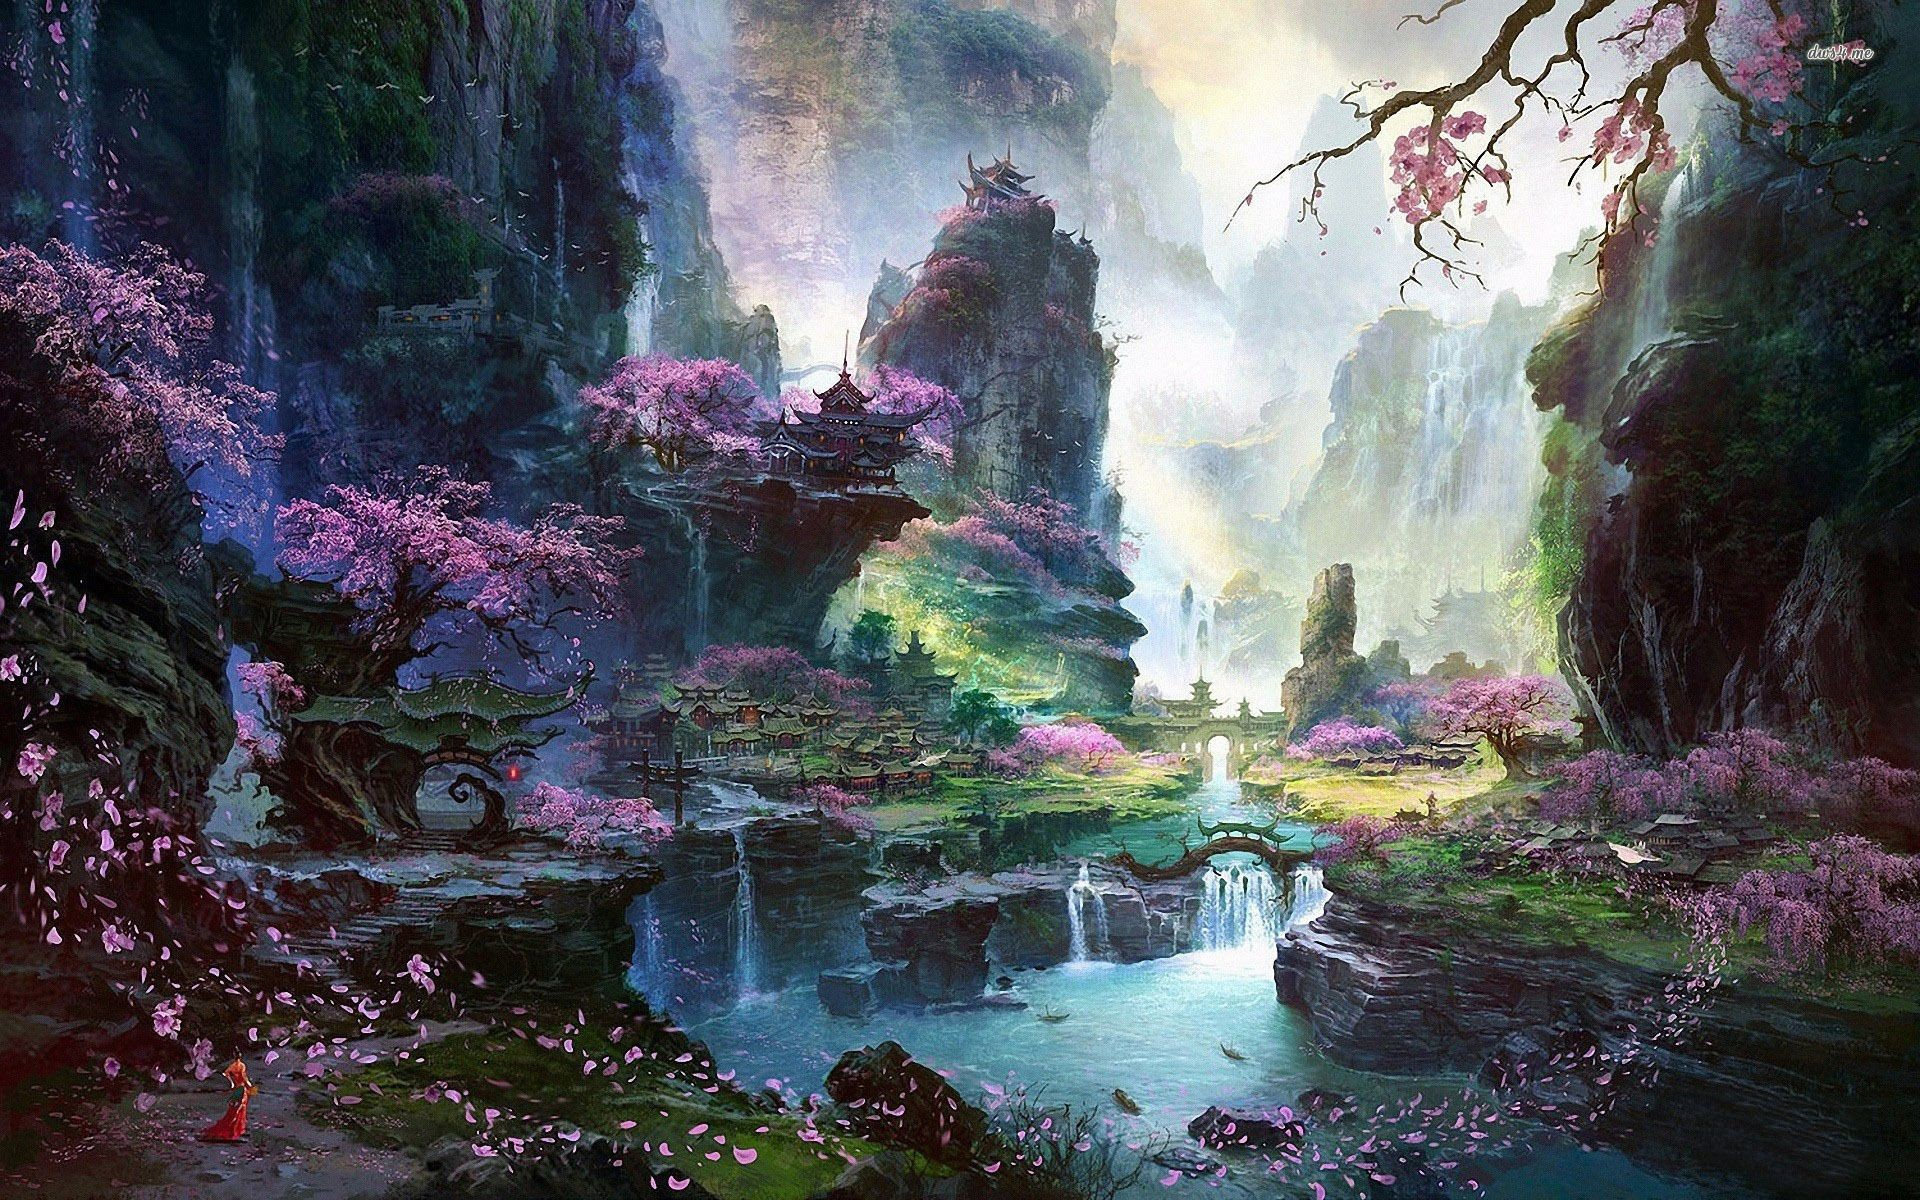 Res: 1920x1200, Chinese town in the mountains HD wallpaper | Fantasy Desktop Wallpaper